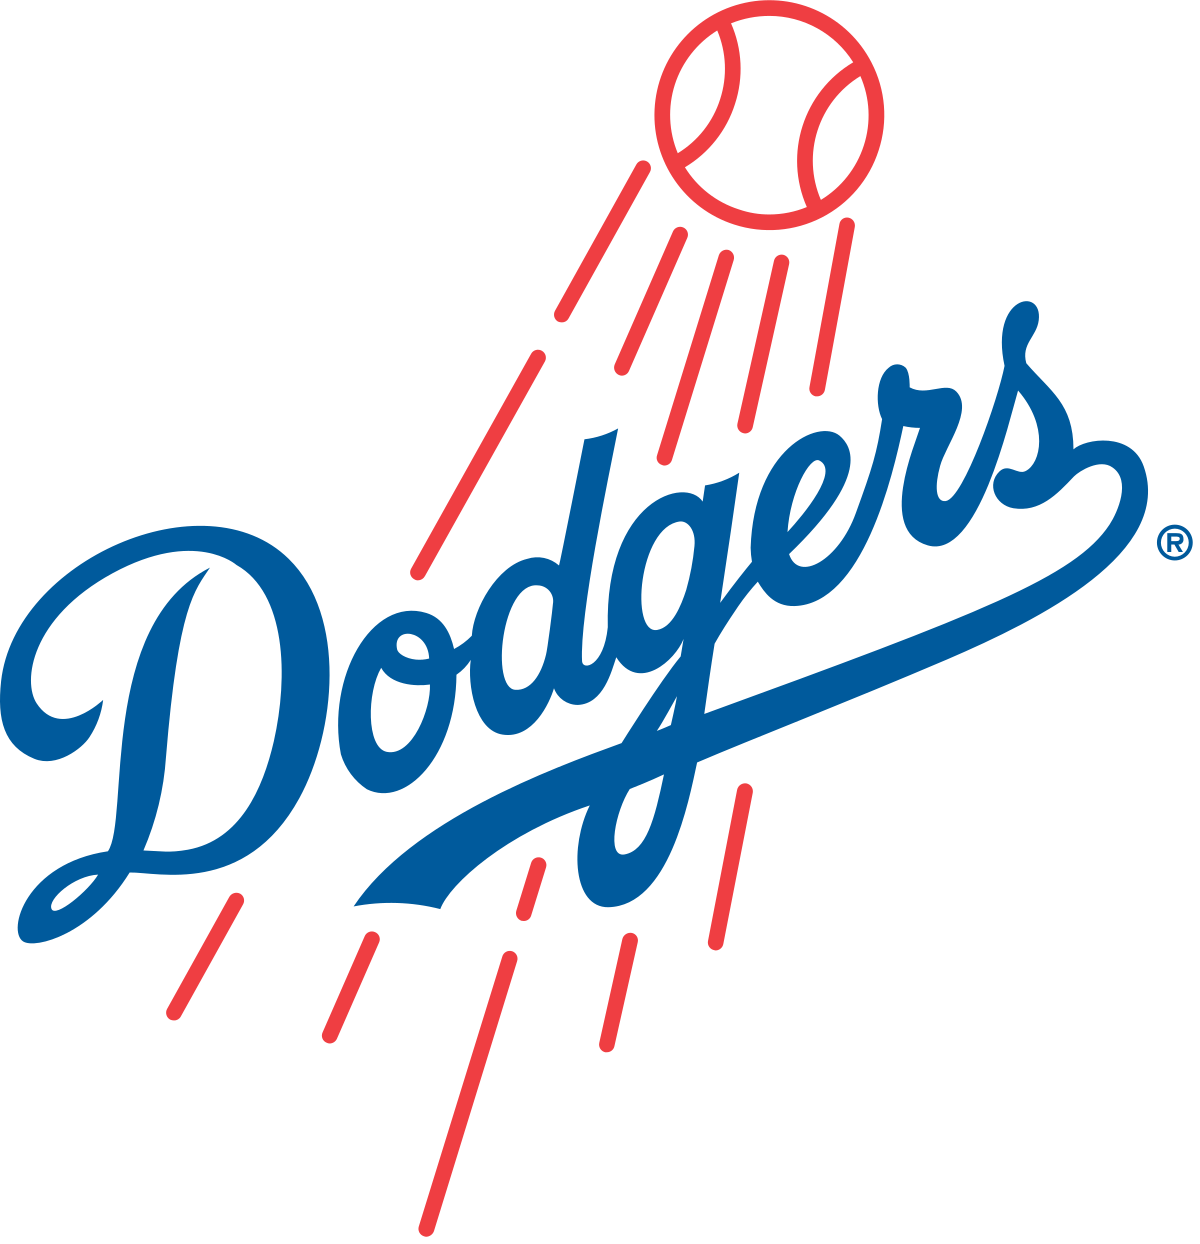 Los angeles wikipedia . Dodgers drawing loco jpg transparent